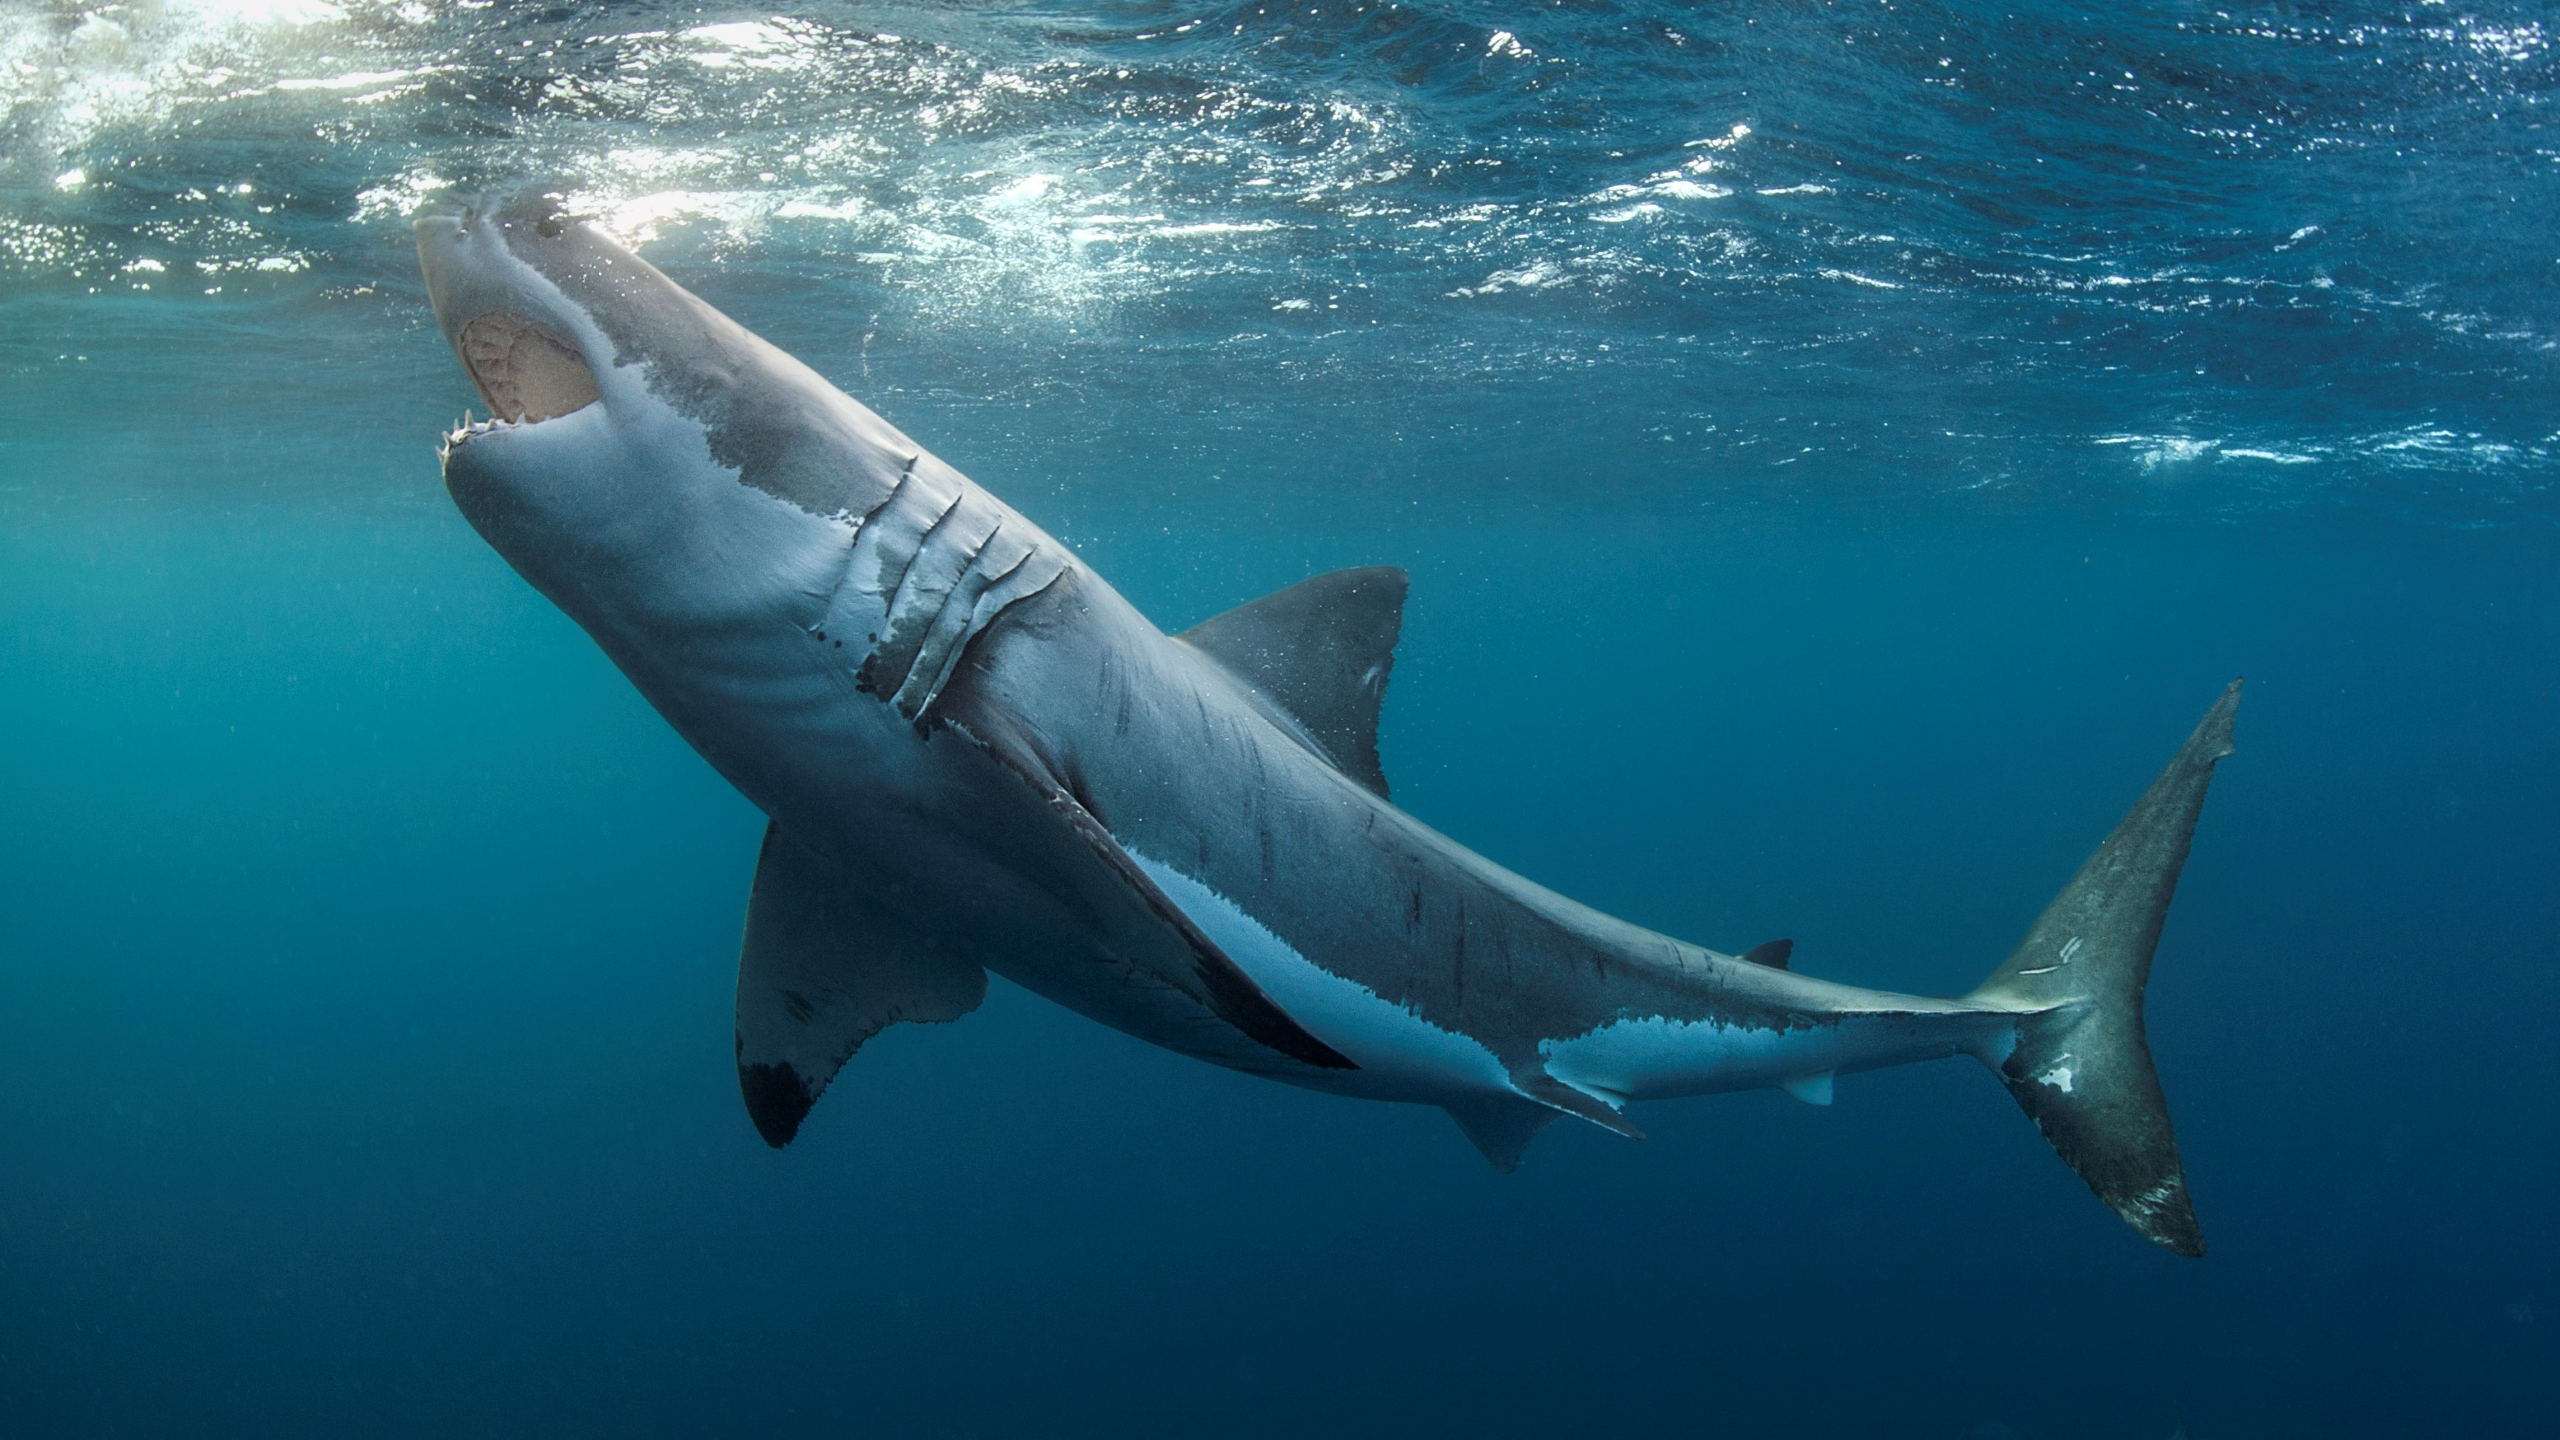 Great white sharks can't see a difference between humans and prey